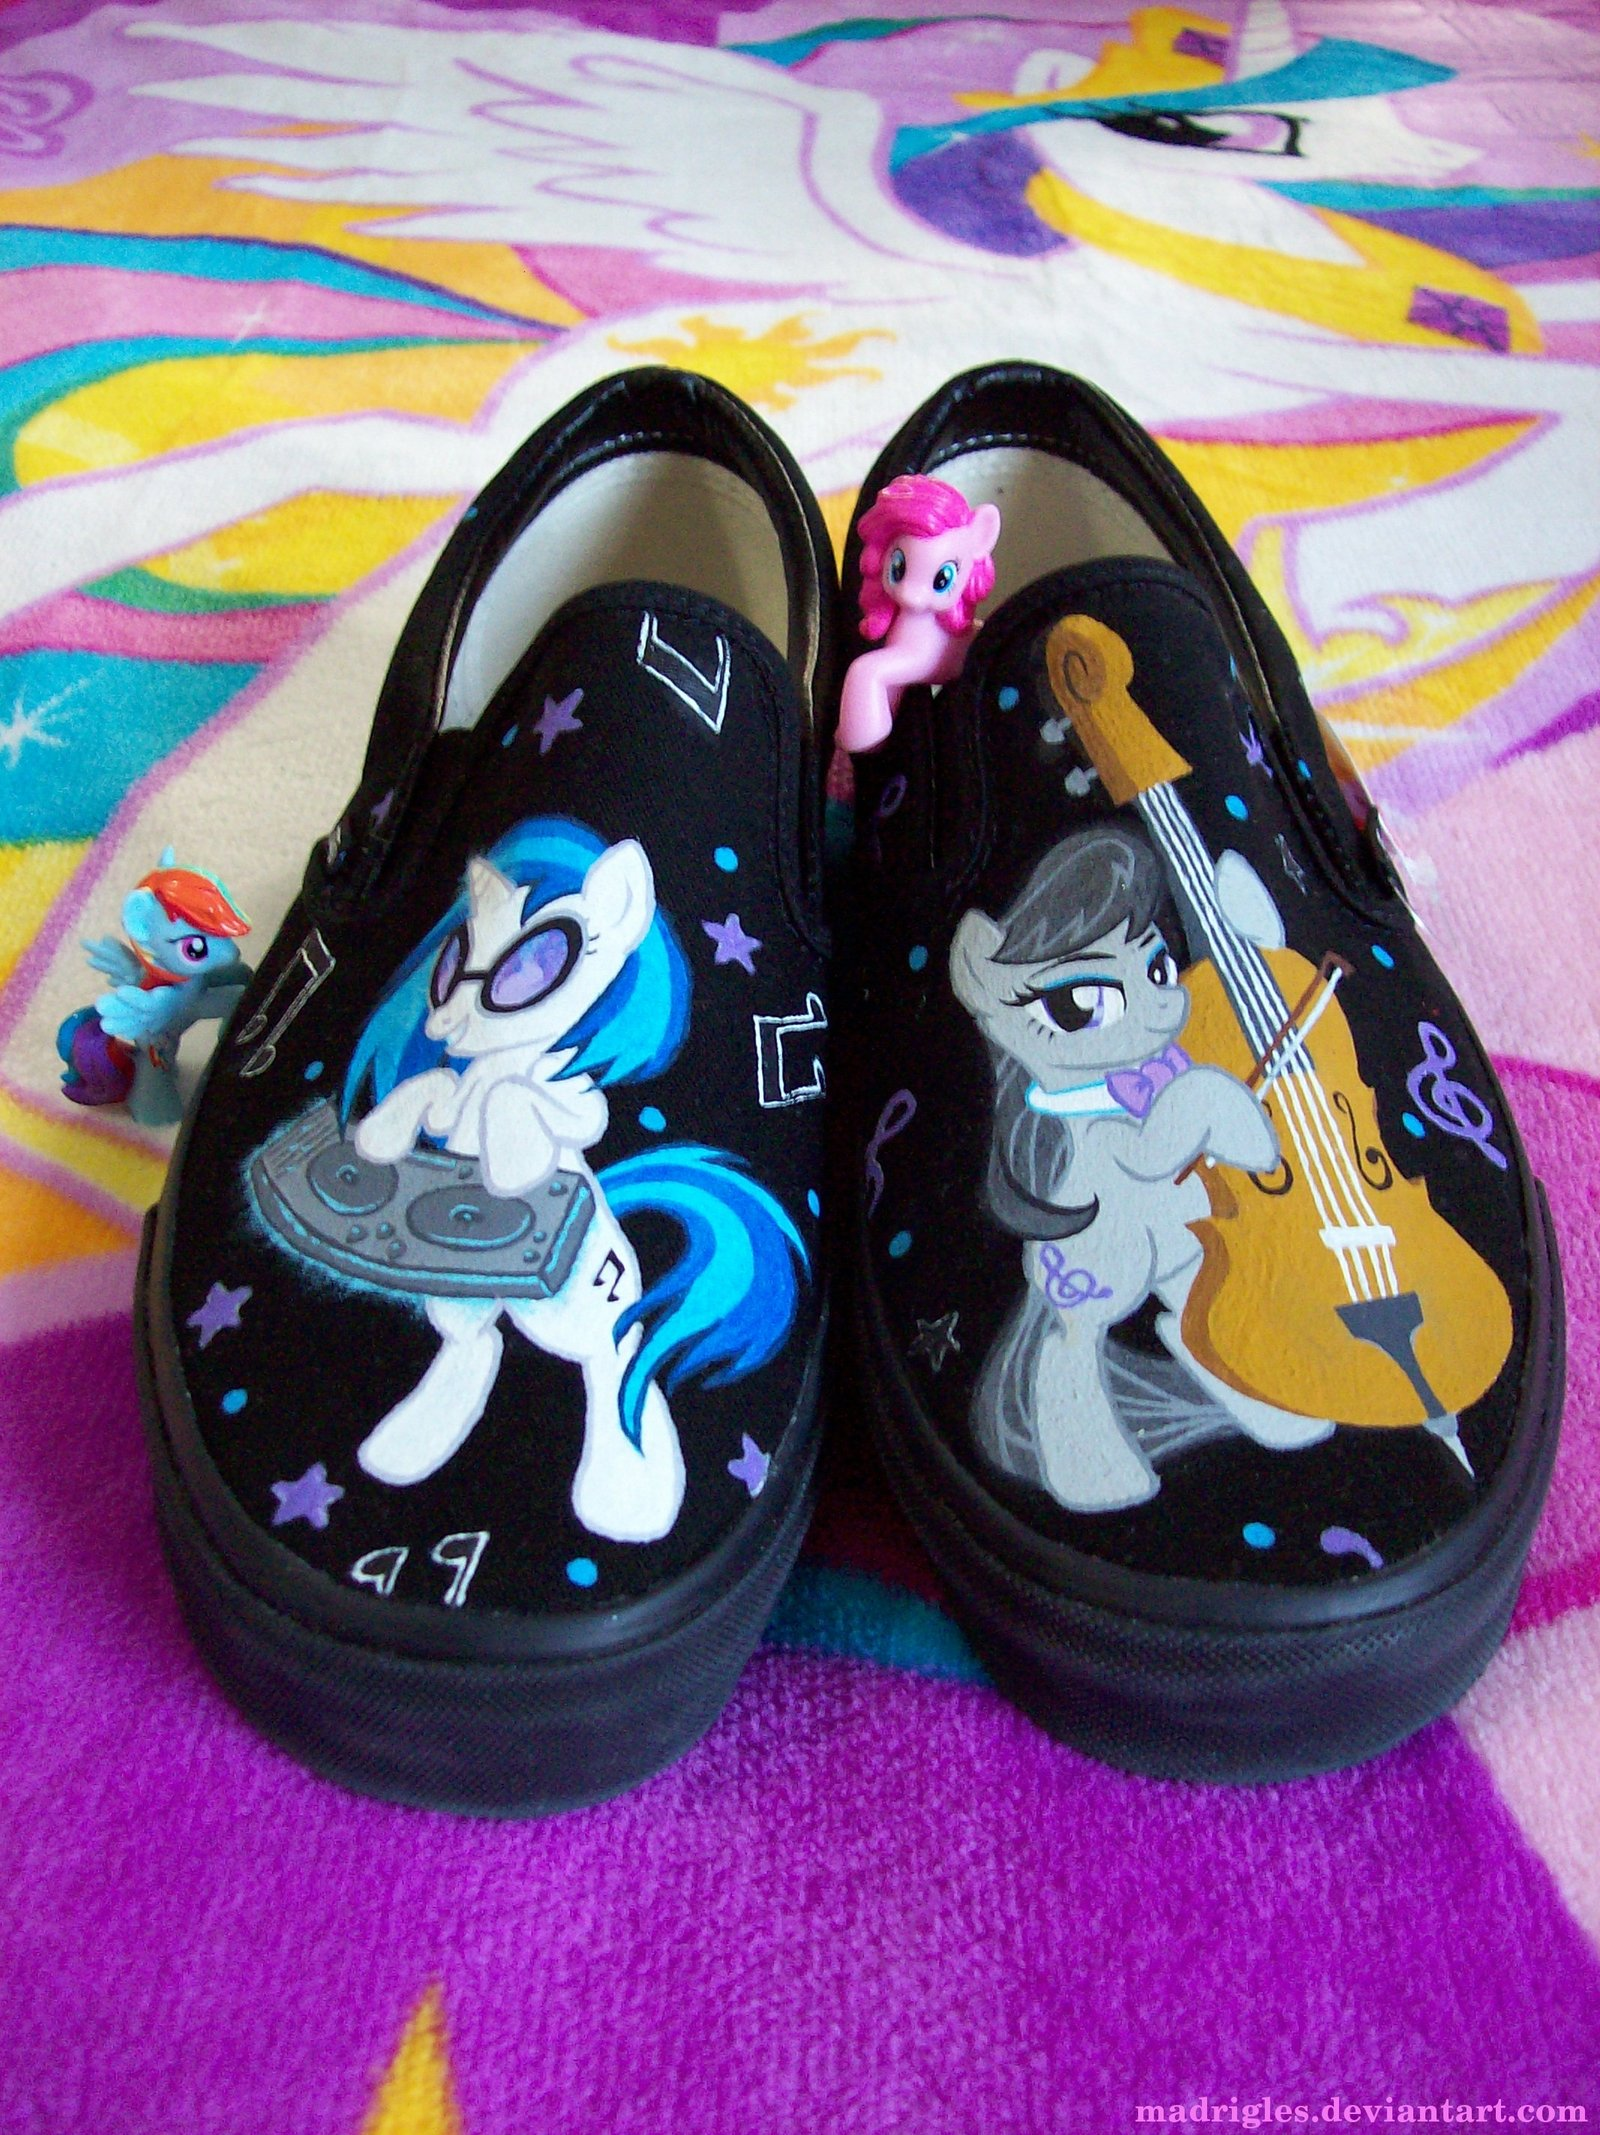 79fc29a0230788 madrigles.deviantart.com Rainbow Dash Pony footwear shoe purple